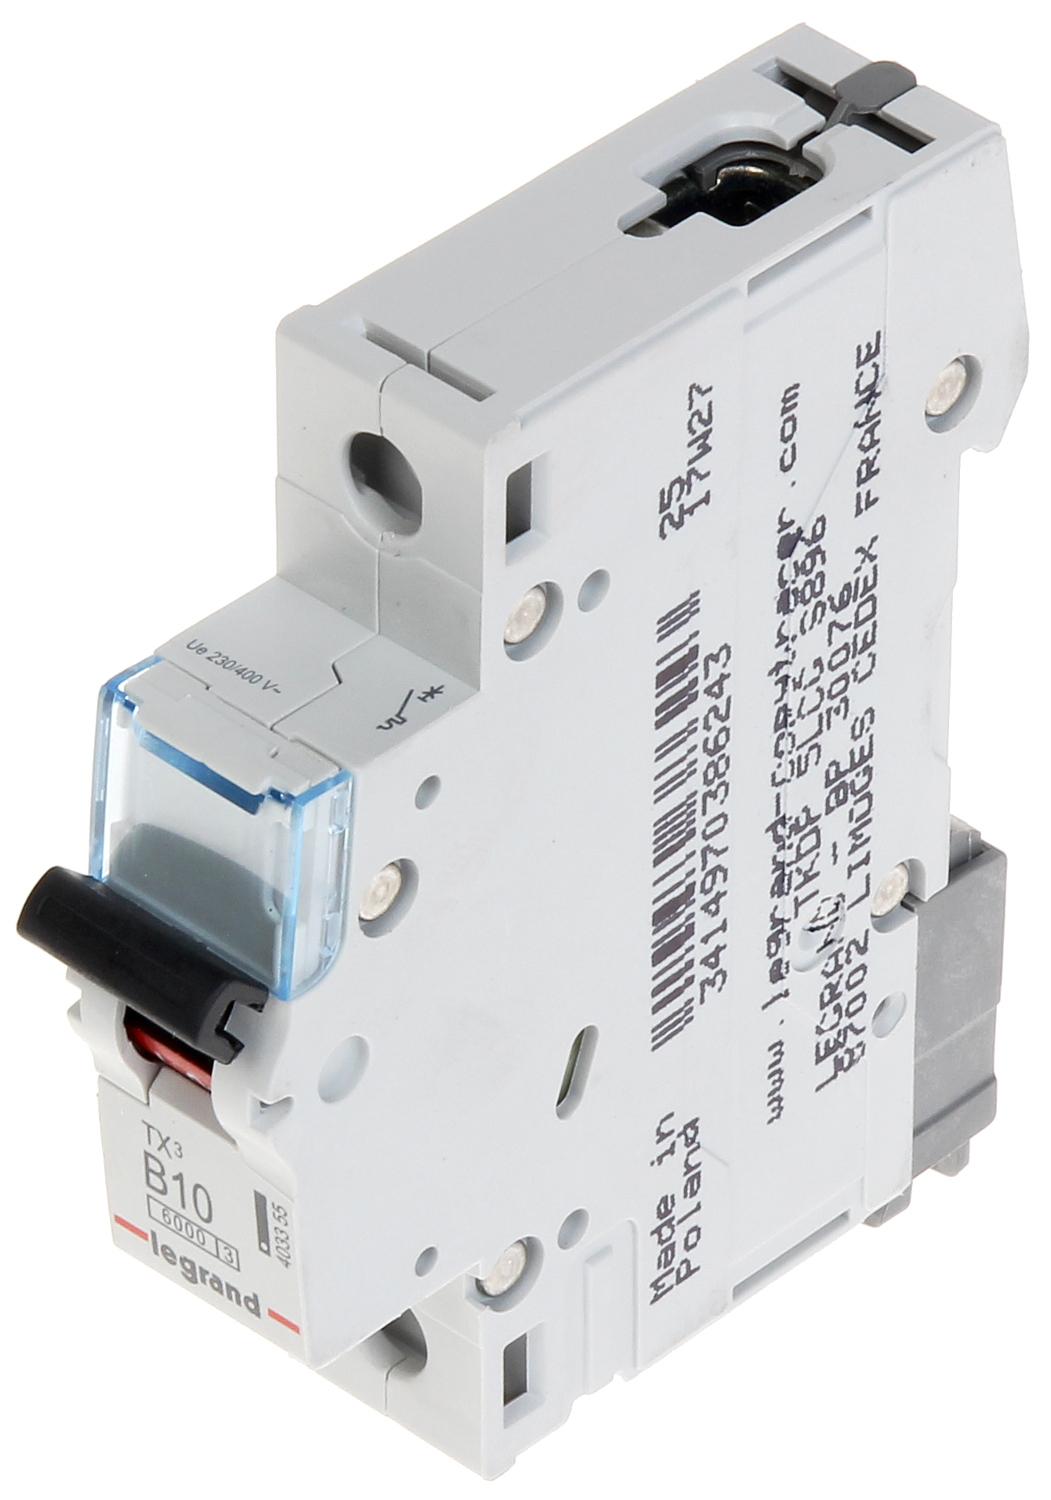 Circuit Breaker Le 403355 One Phase 10 A B Type Legrand Why My Ac Trips The When I Switch It On Sunrise